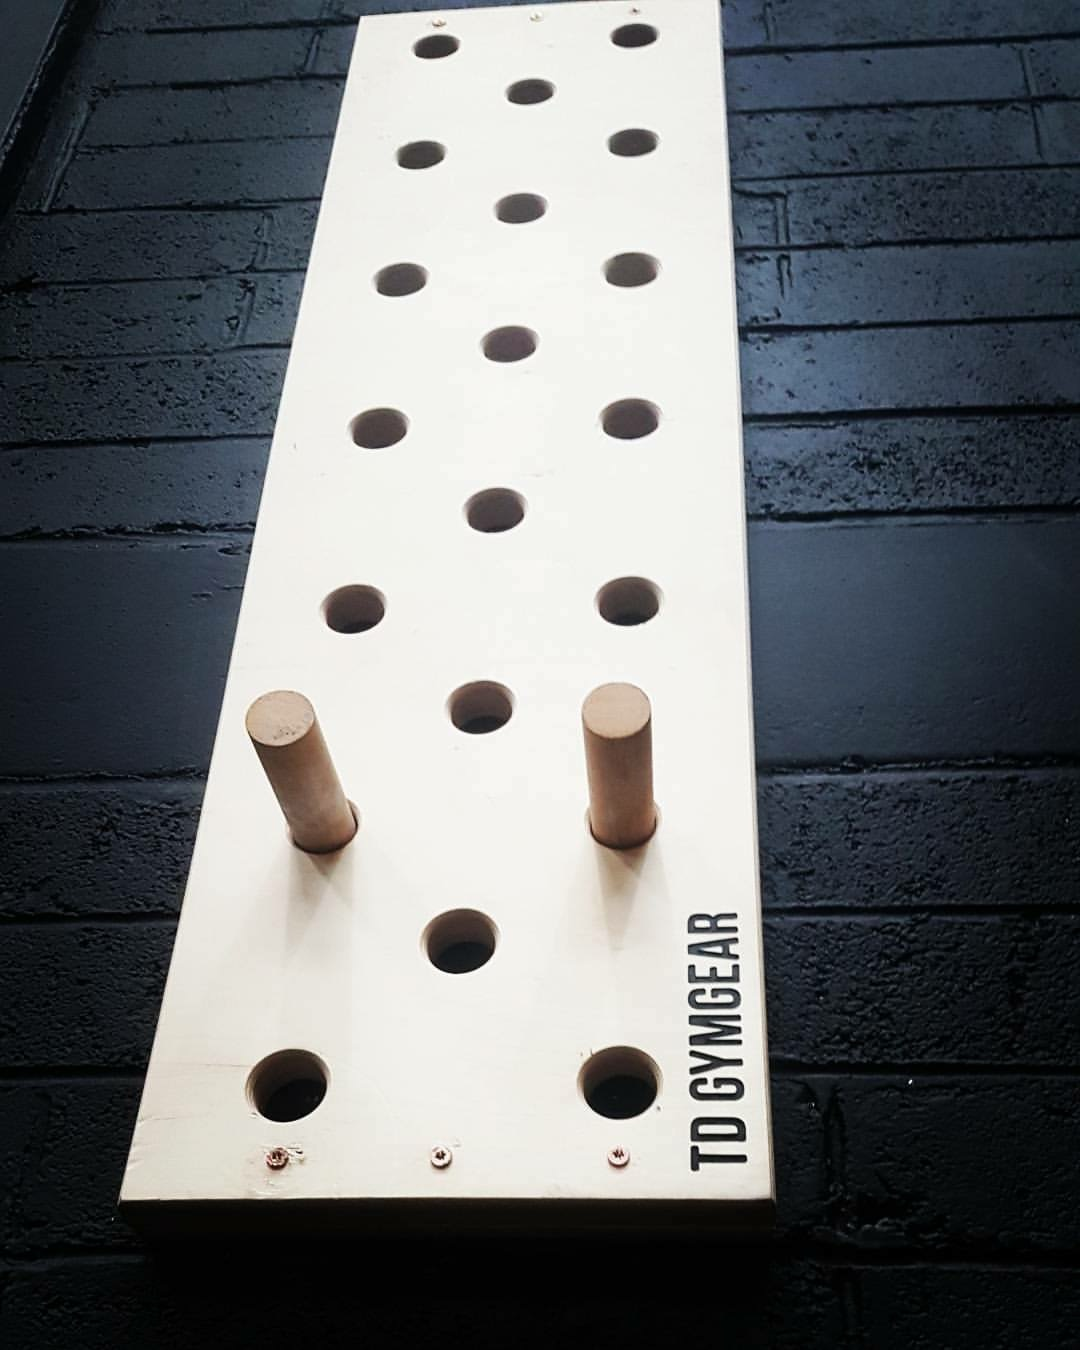 a board with multiple hole and two wooden pegs mounted on a dark wall